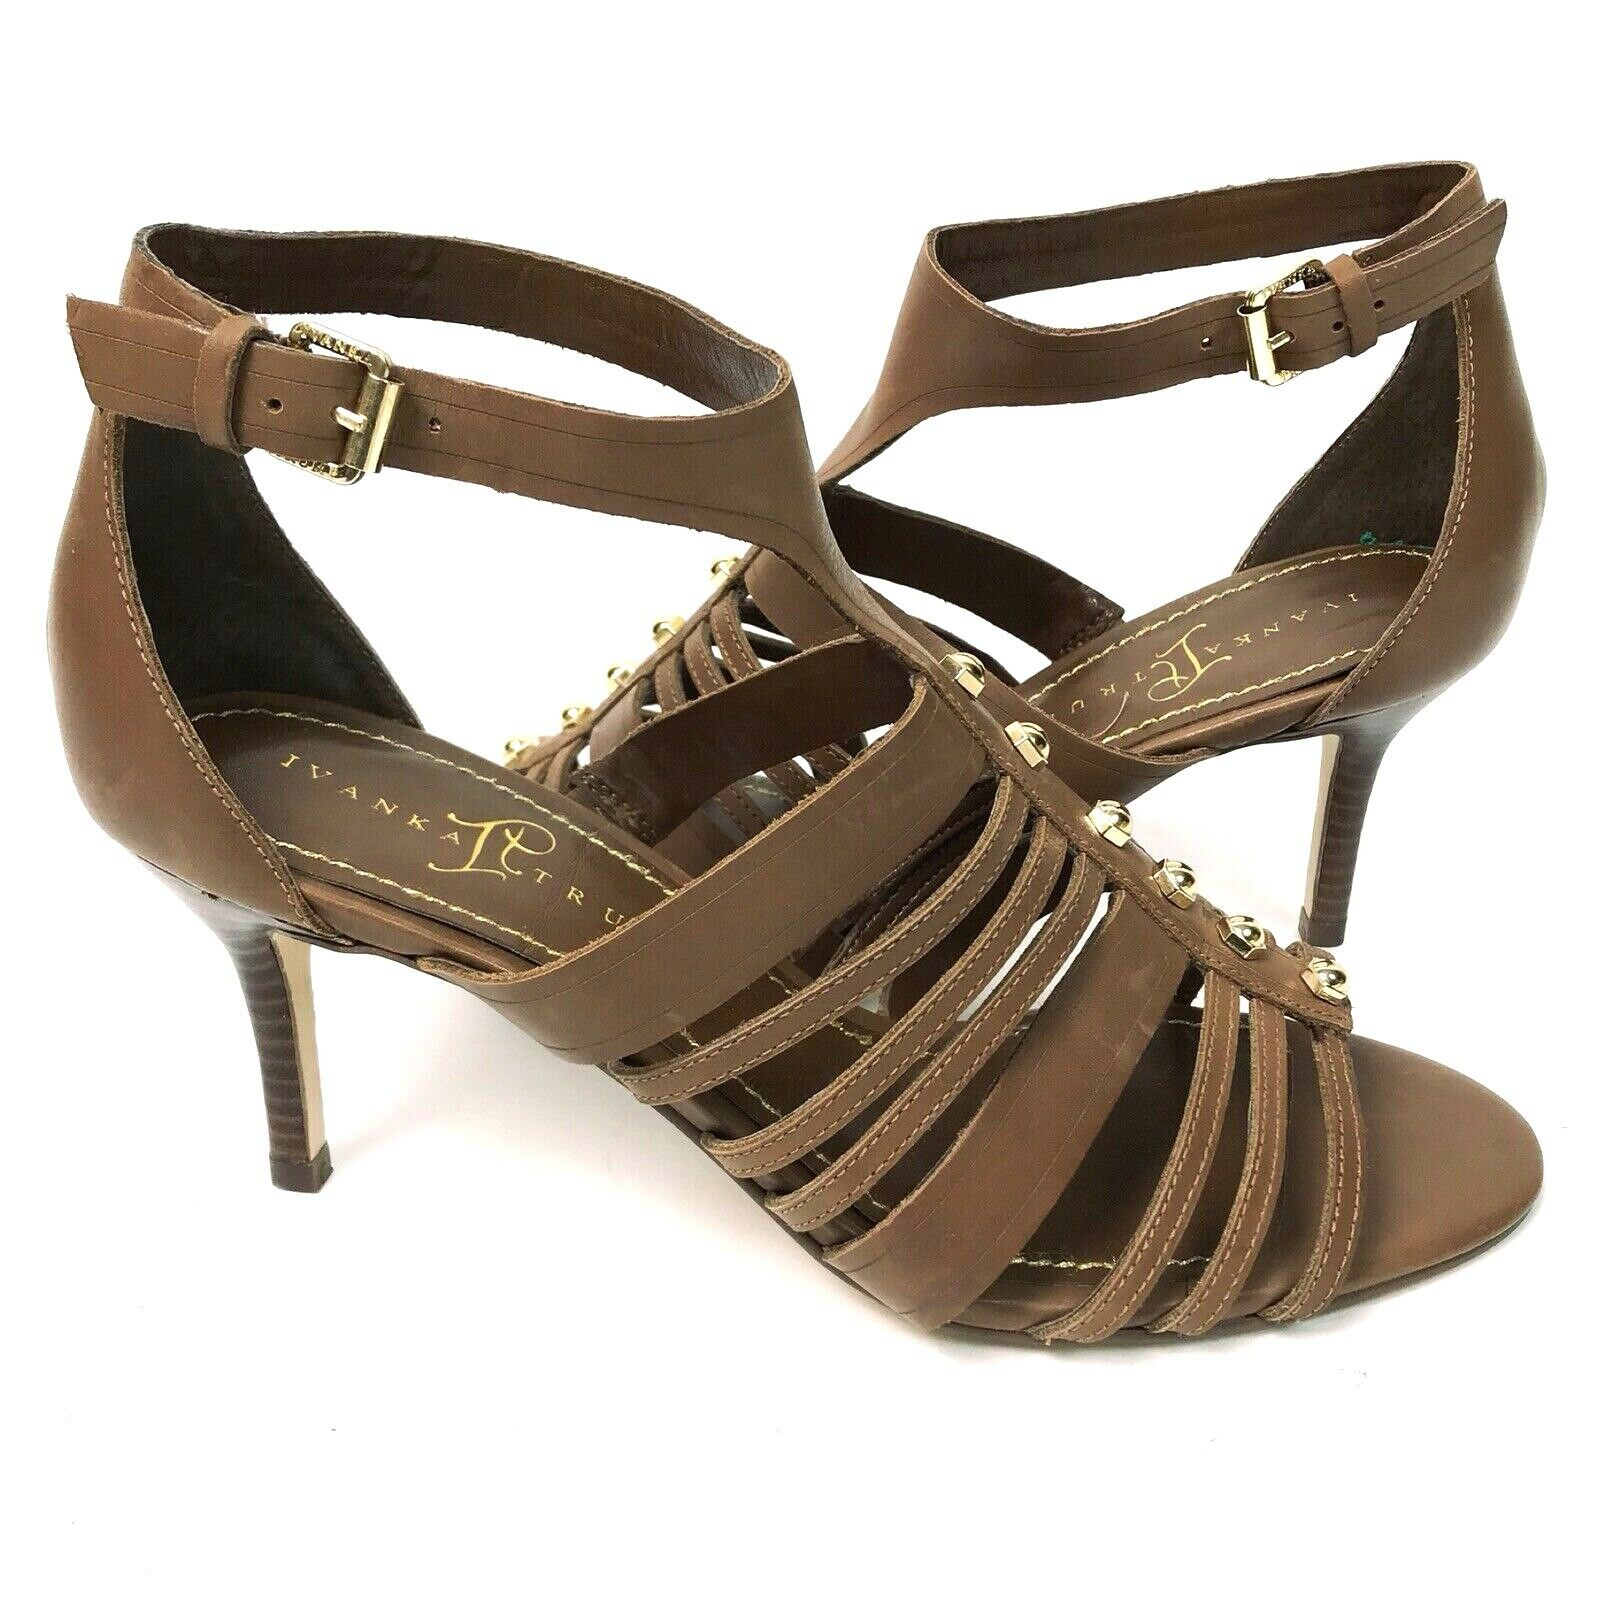 Ivanka Trump 8.5 Women's Gladiator Heels Sandals Cut Out Brown Studded Ankle Str